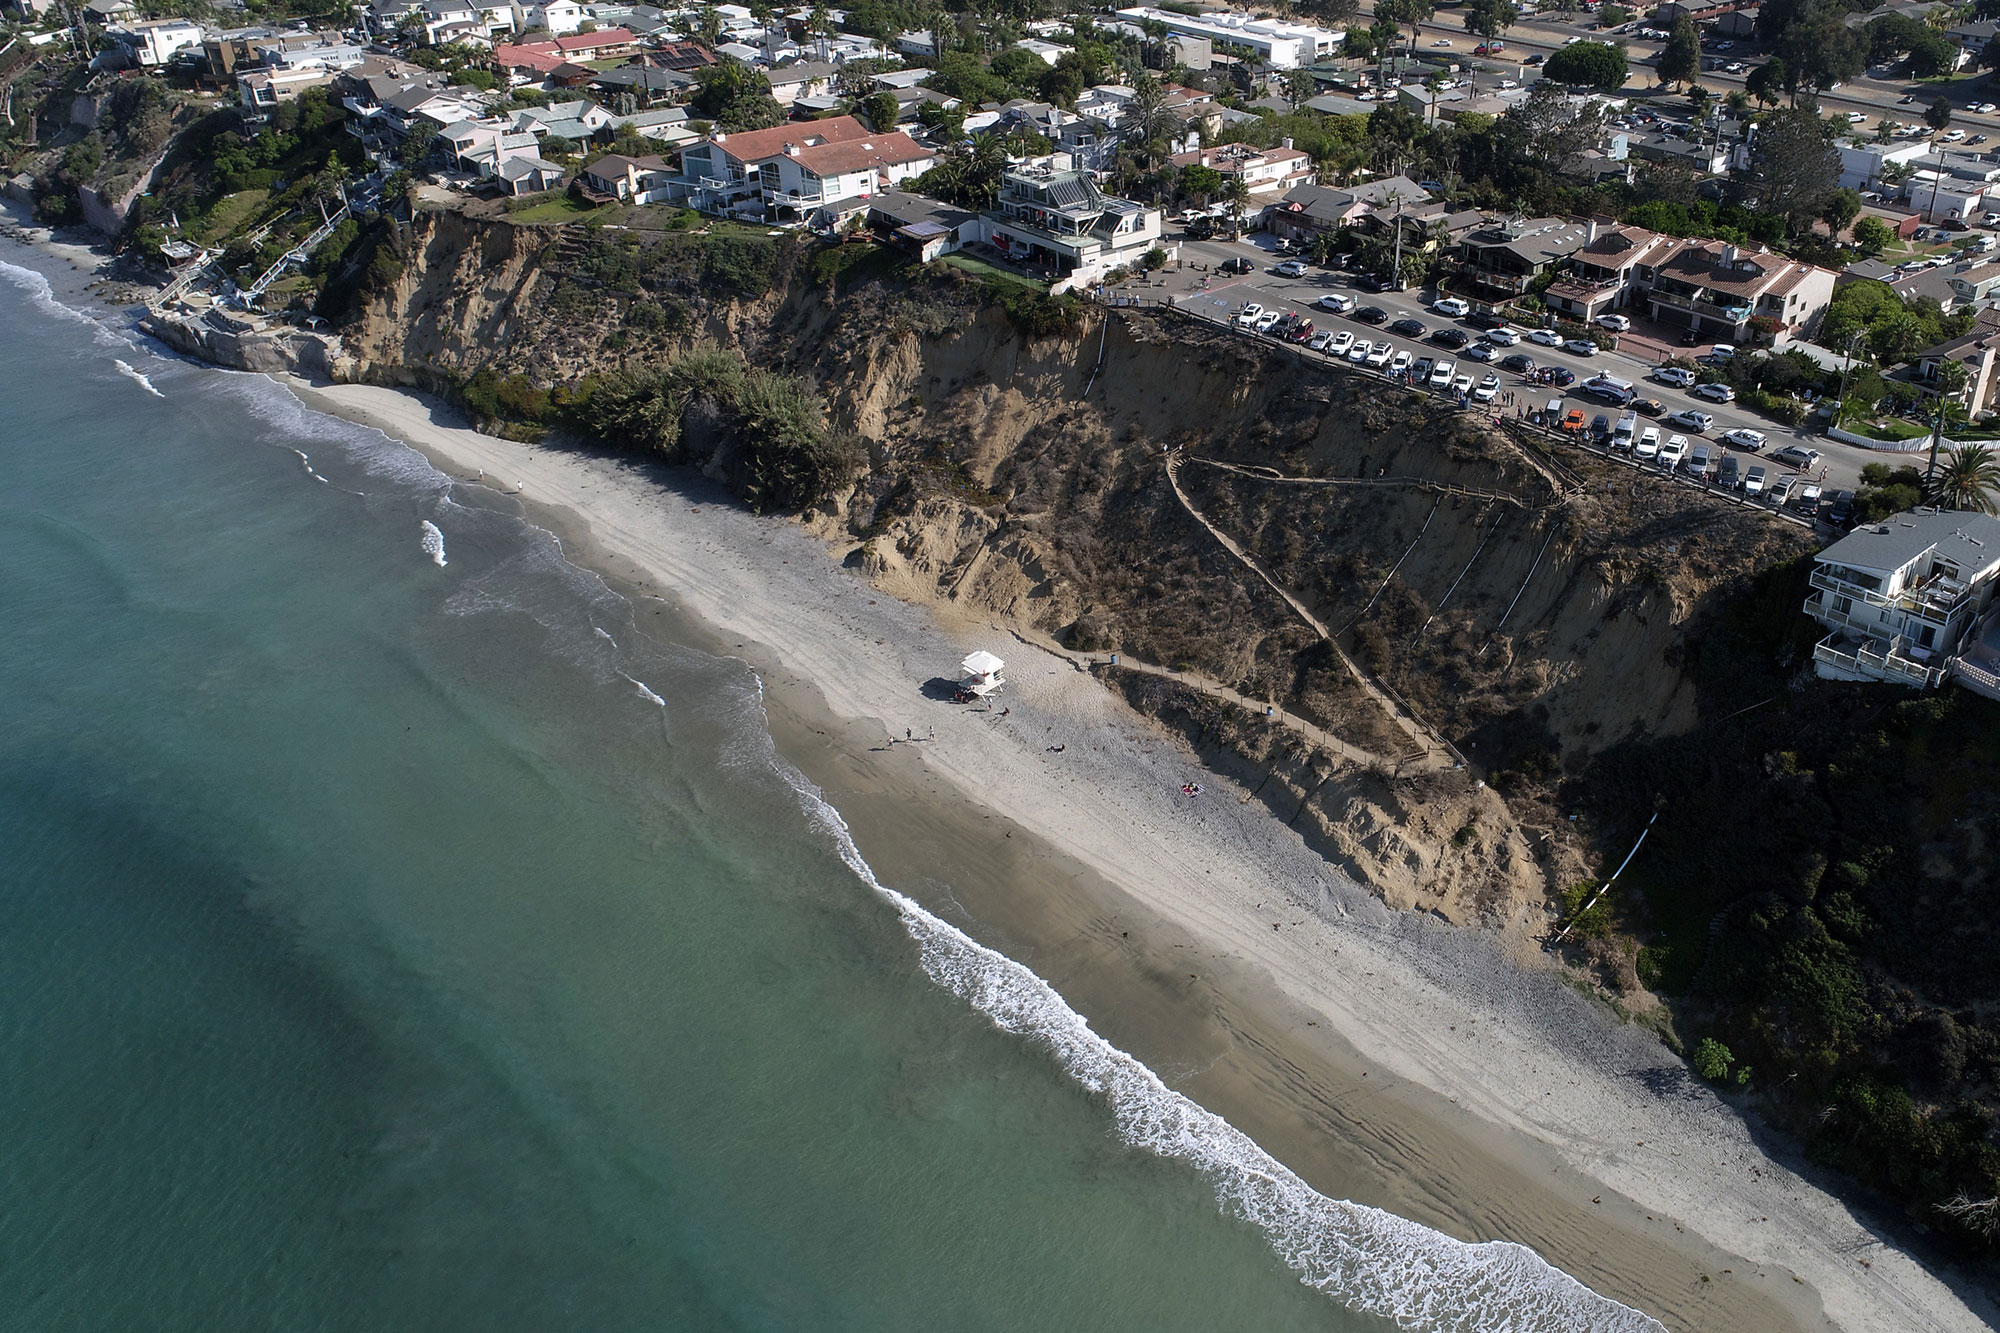 Teen boy attacked by shark in Encinitas